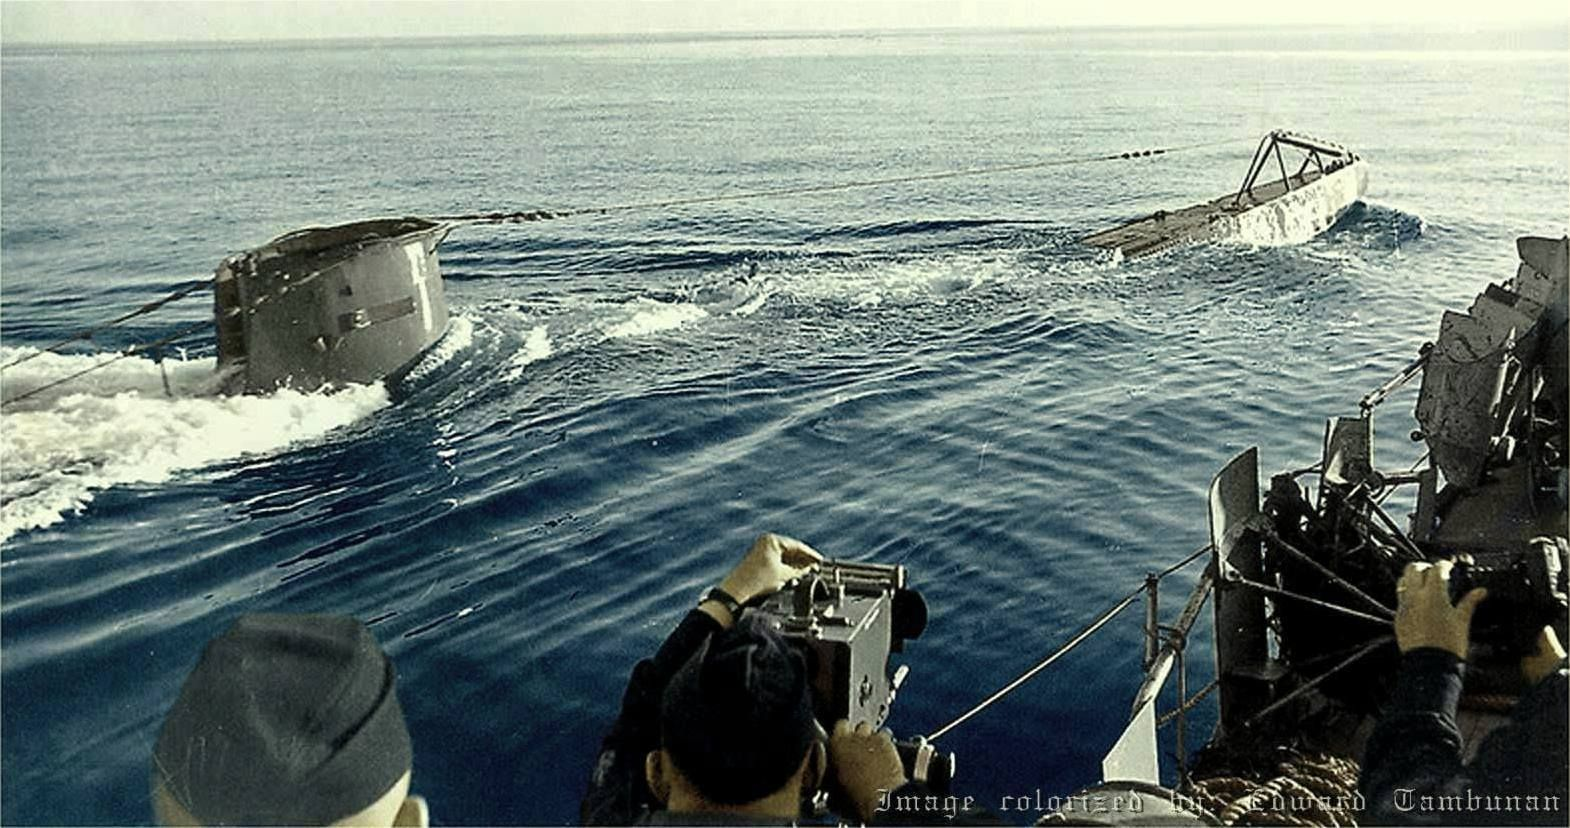 u boat surfacing wow submarines navy ships wwii. Black Bedroom Furniture Sets. Home Design Ideas